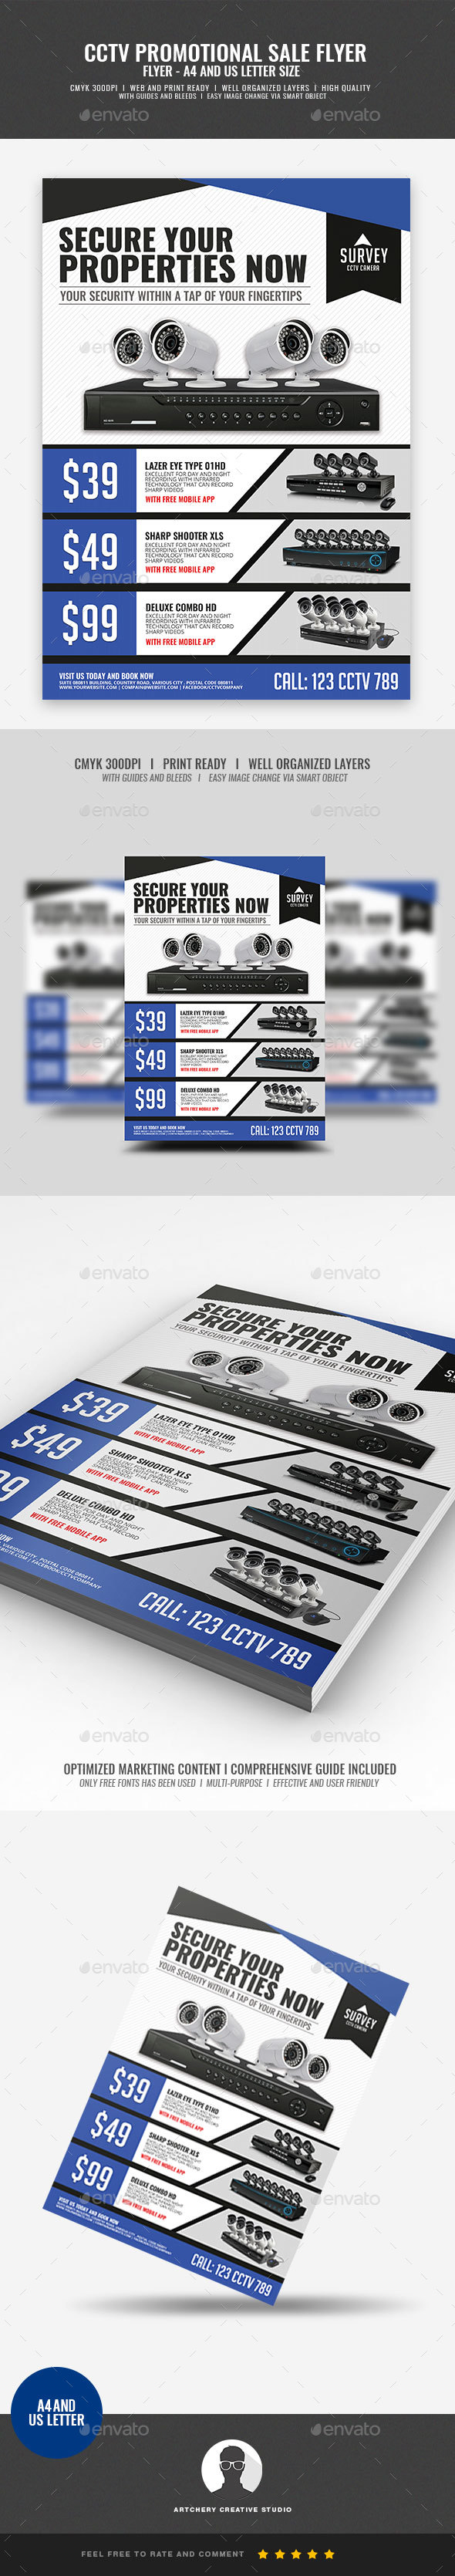 CCTV Promotional Product Flyer - Corporate Flyers